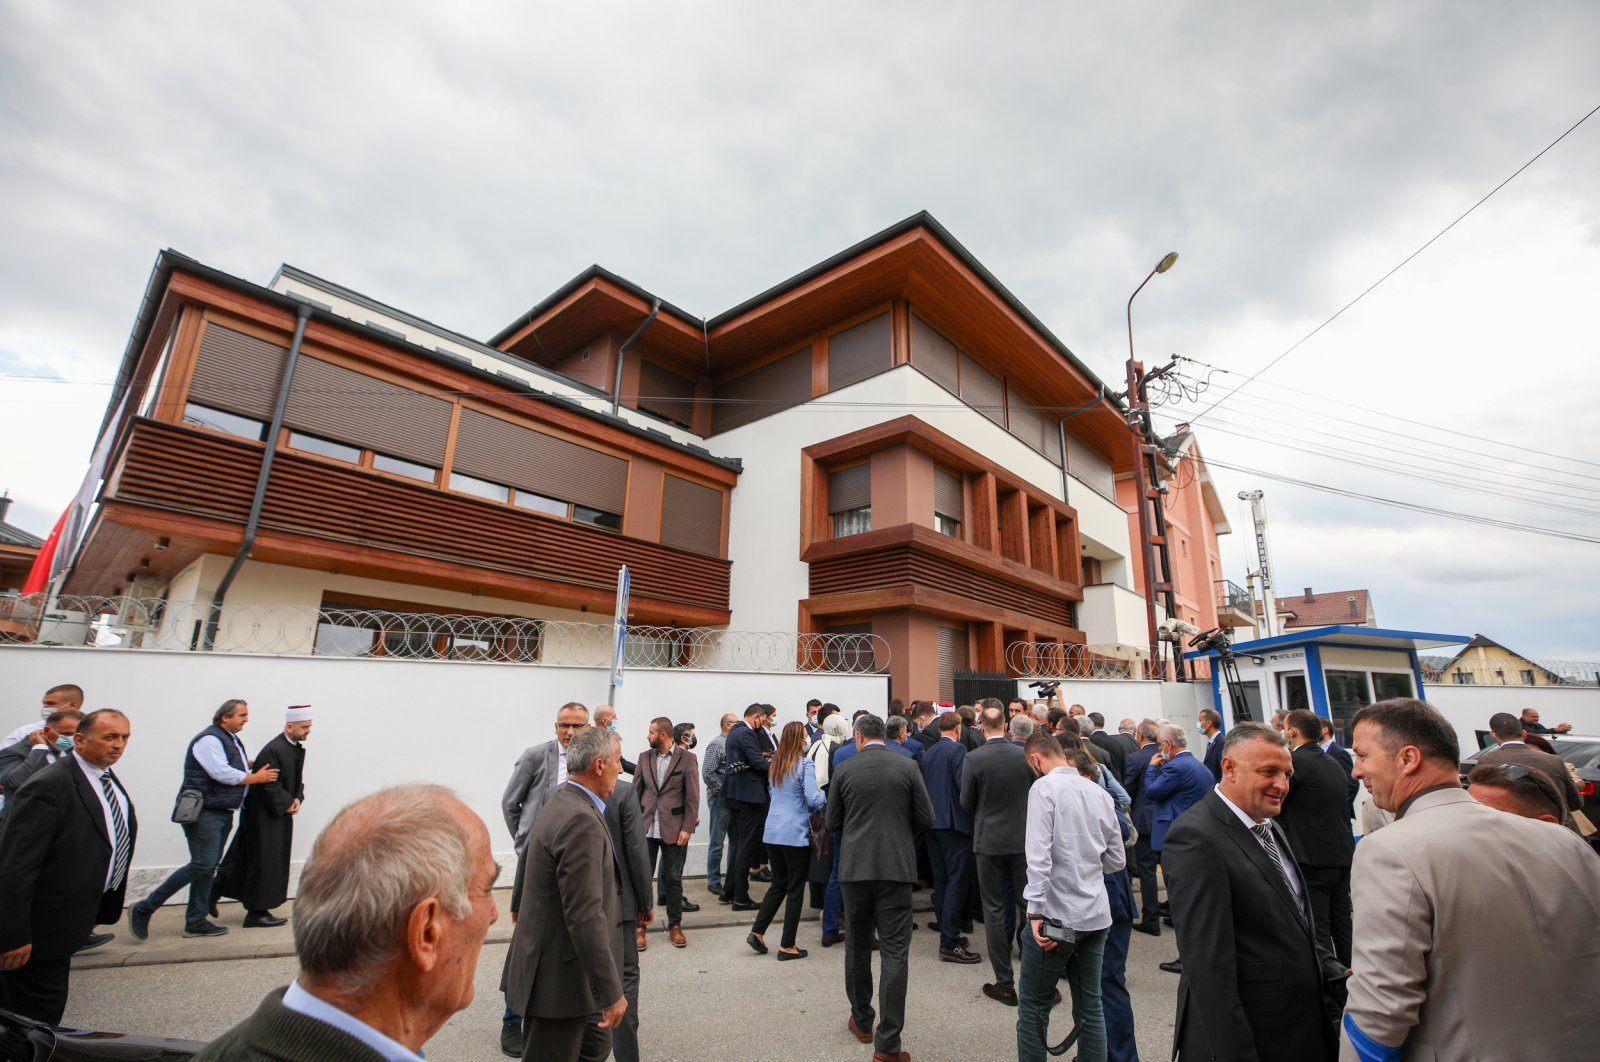 Turkey's consulate in Novi Pazar was opened earlier this month, Novi Pazar, Serbia, Sept. 1, 2021. (AA Photo)